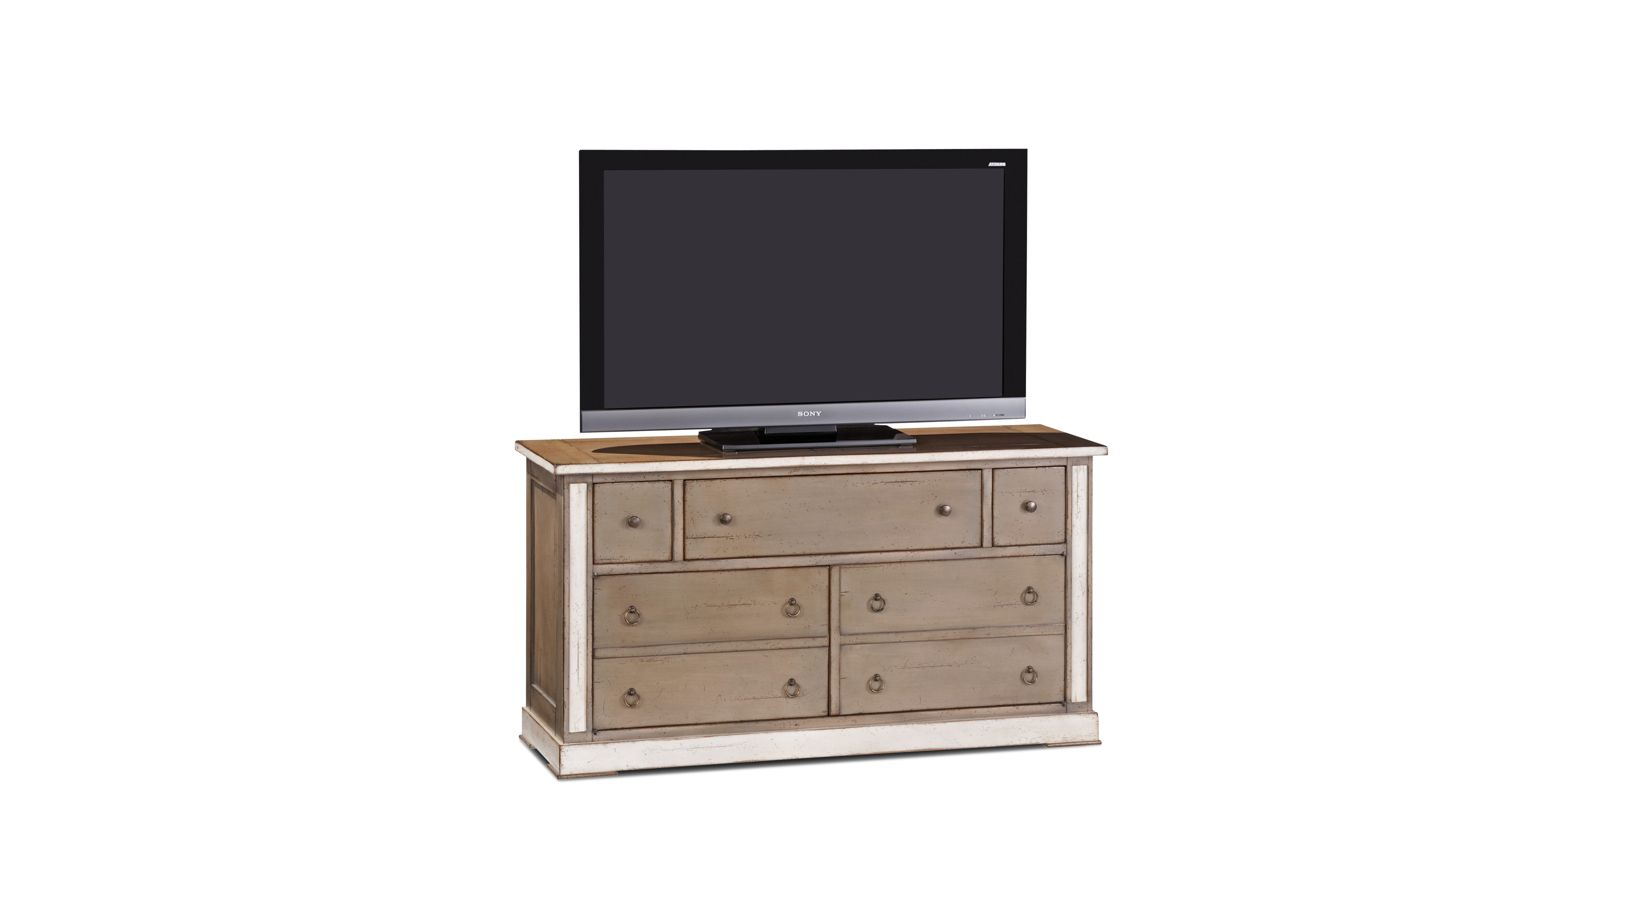 meuble tv hauteville collection nouveaux classiques. Black Bedroom Furniture Sets. Home Design Ideas